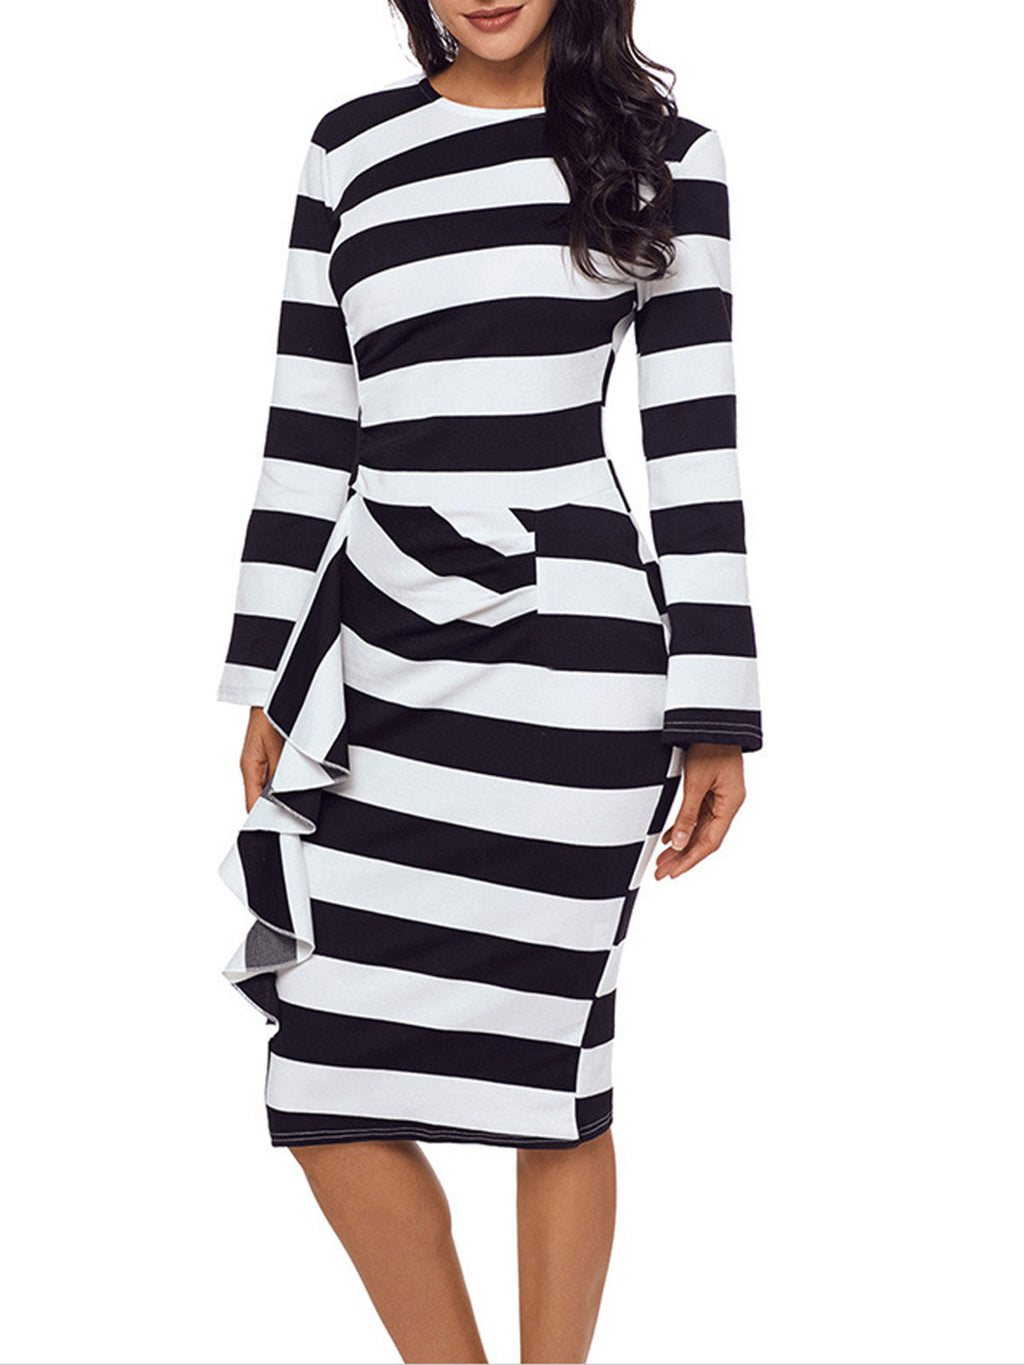 Bow Stripe Long Sleeve Falbala Sheath Comfortable Bodycon Dress Rikkishop